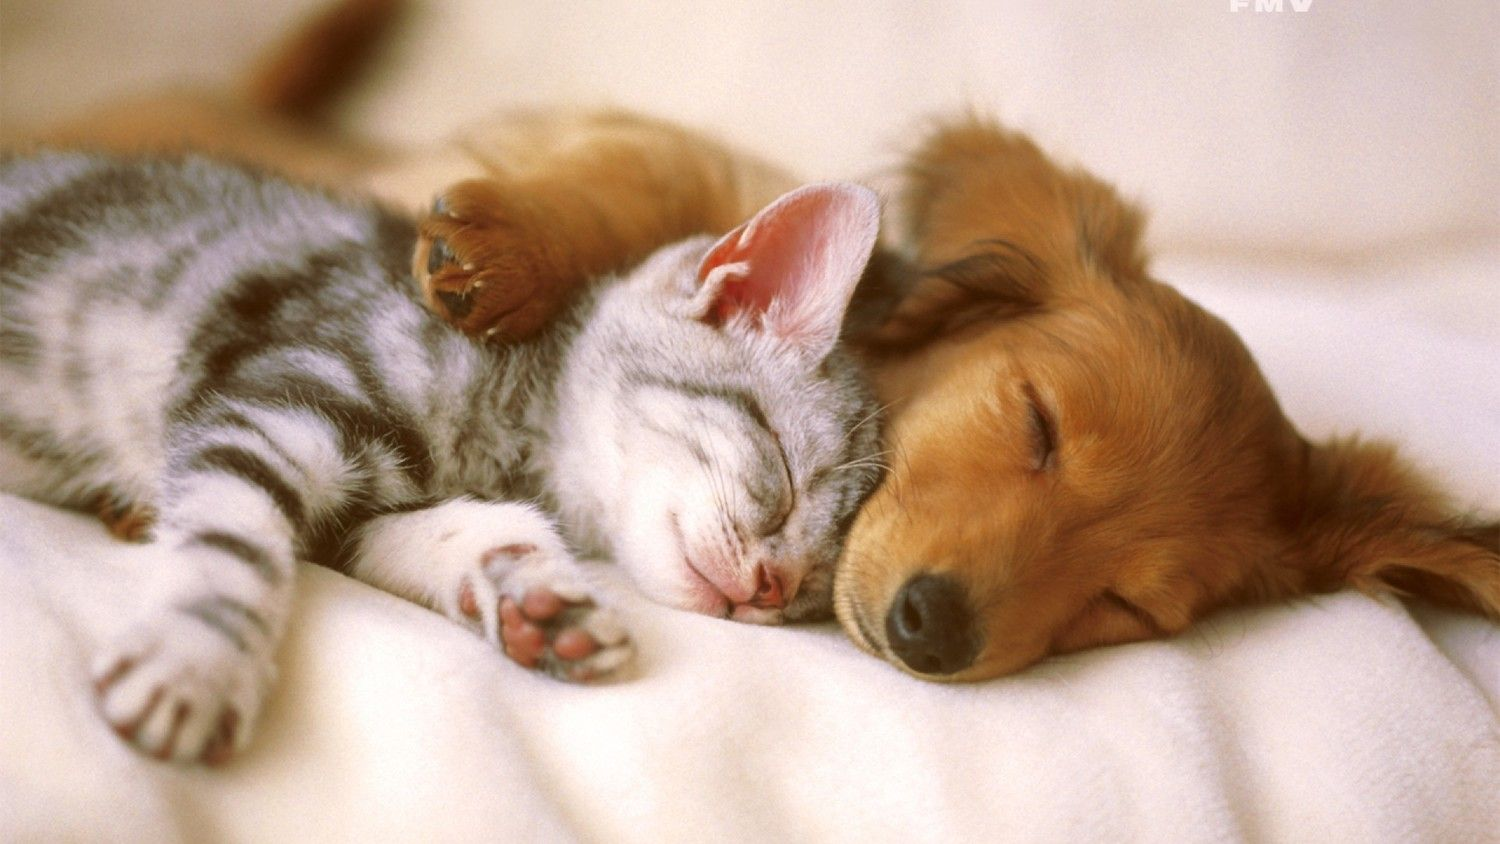 Cat-And-Dog-Wallpaper_6